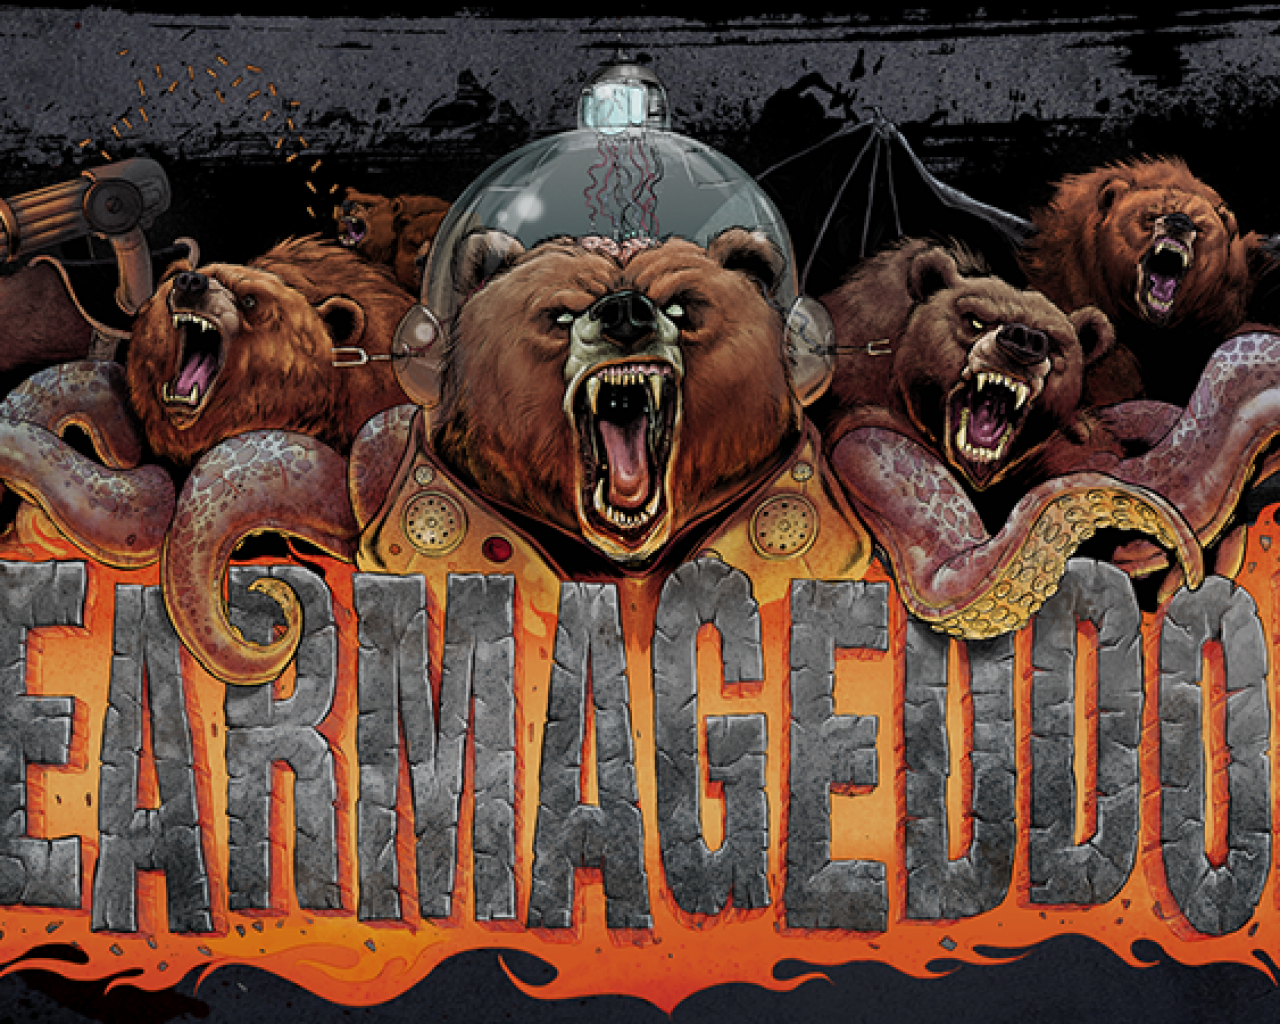 Poster Image for Bearmageddon